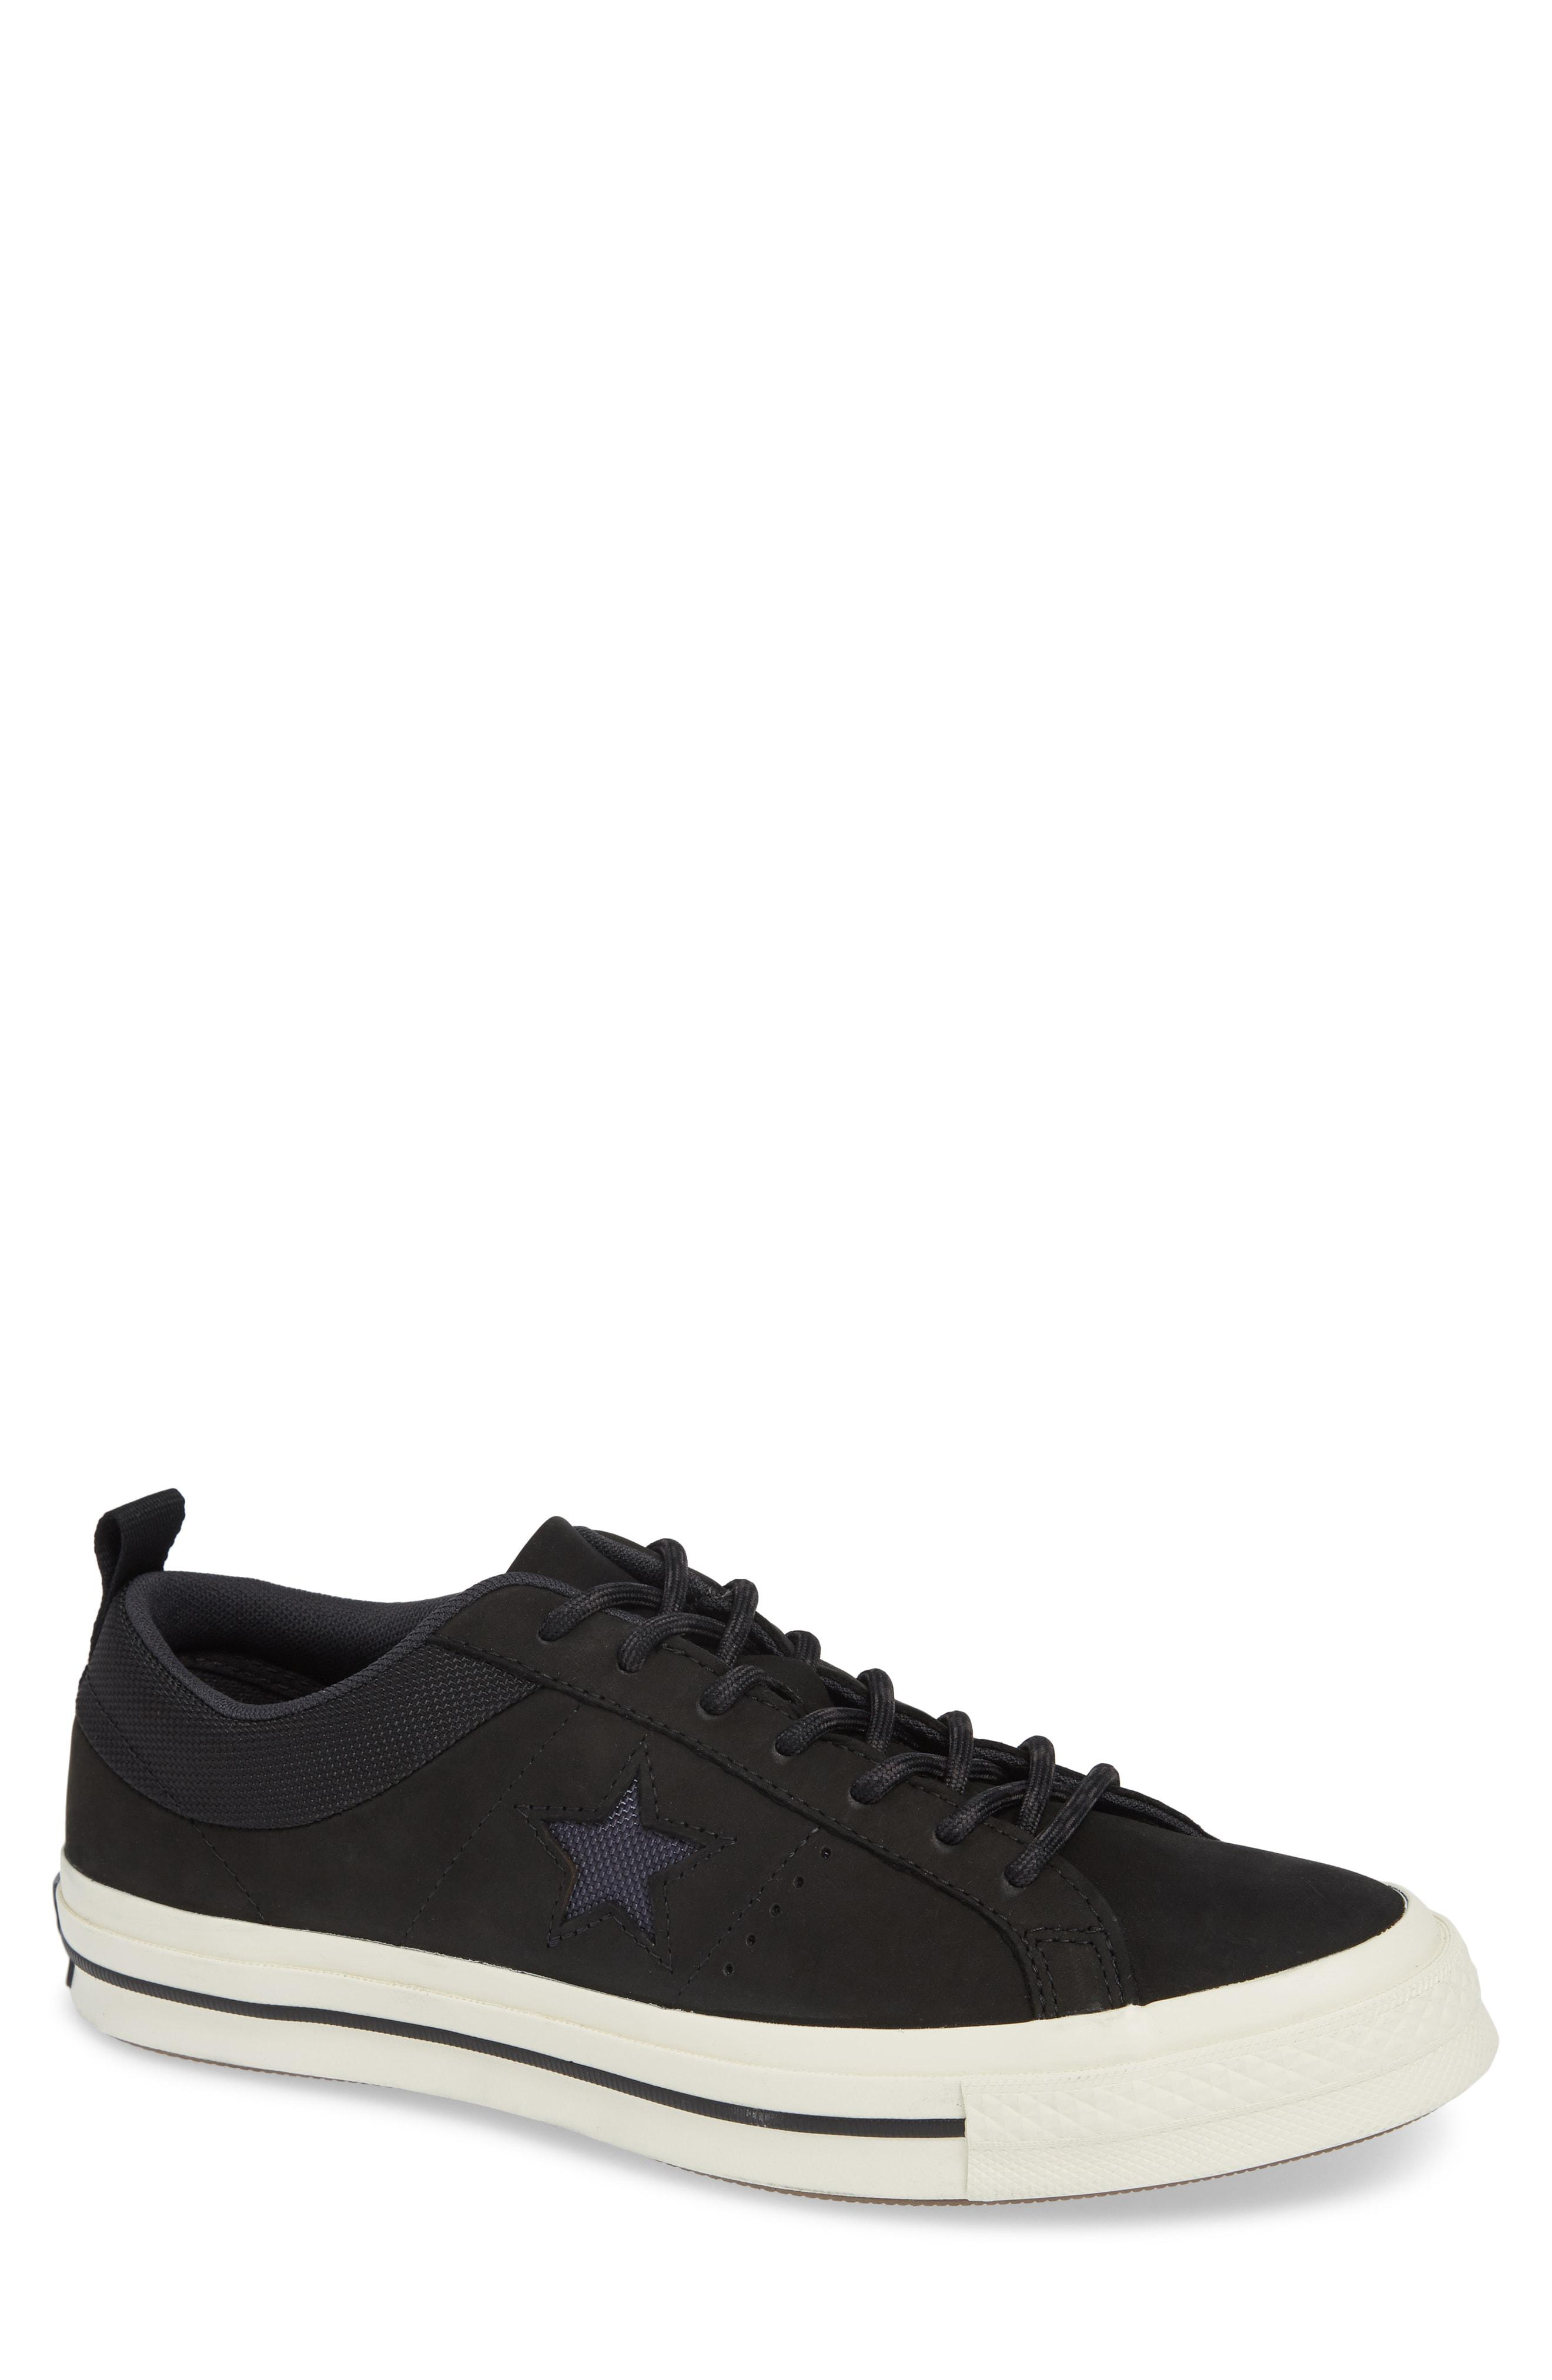 d789109da9b8c7 Lyst - Converse One Star Sierra Ox Sneaker in Black for Men